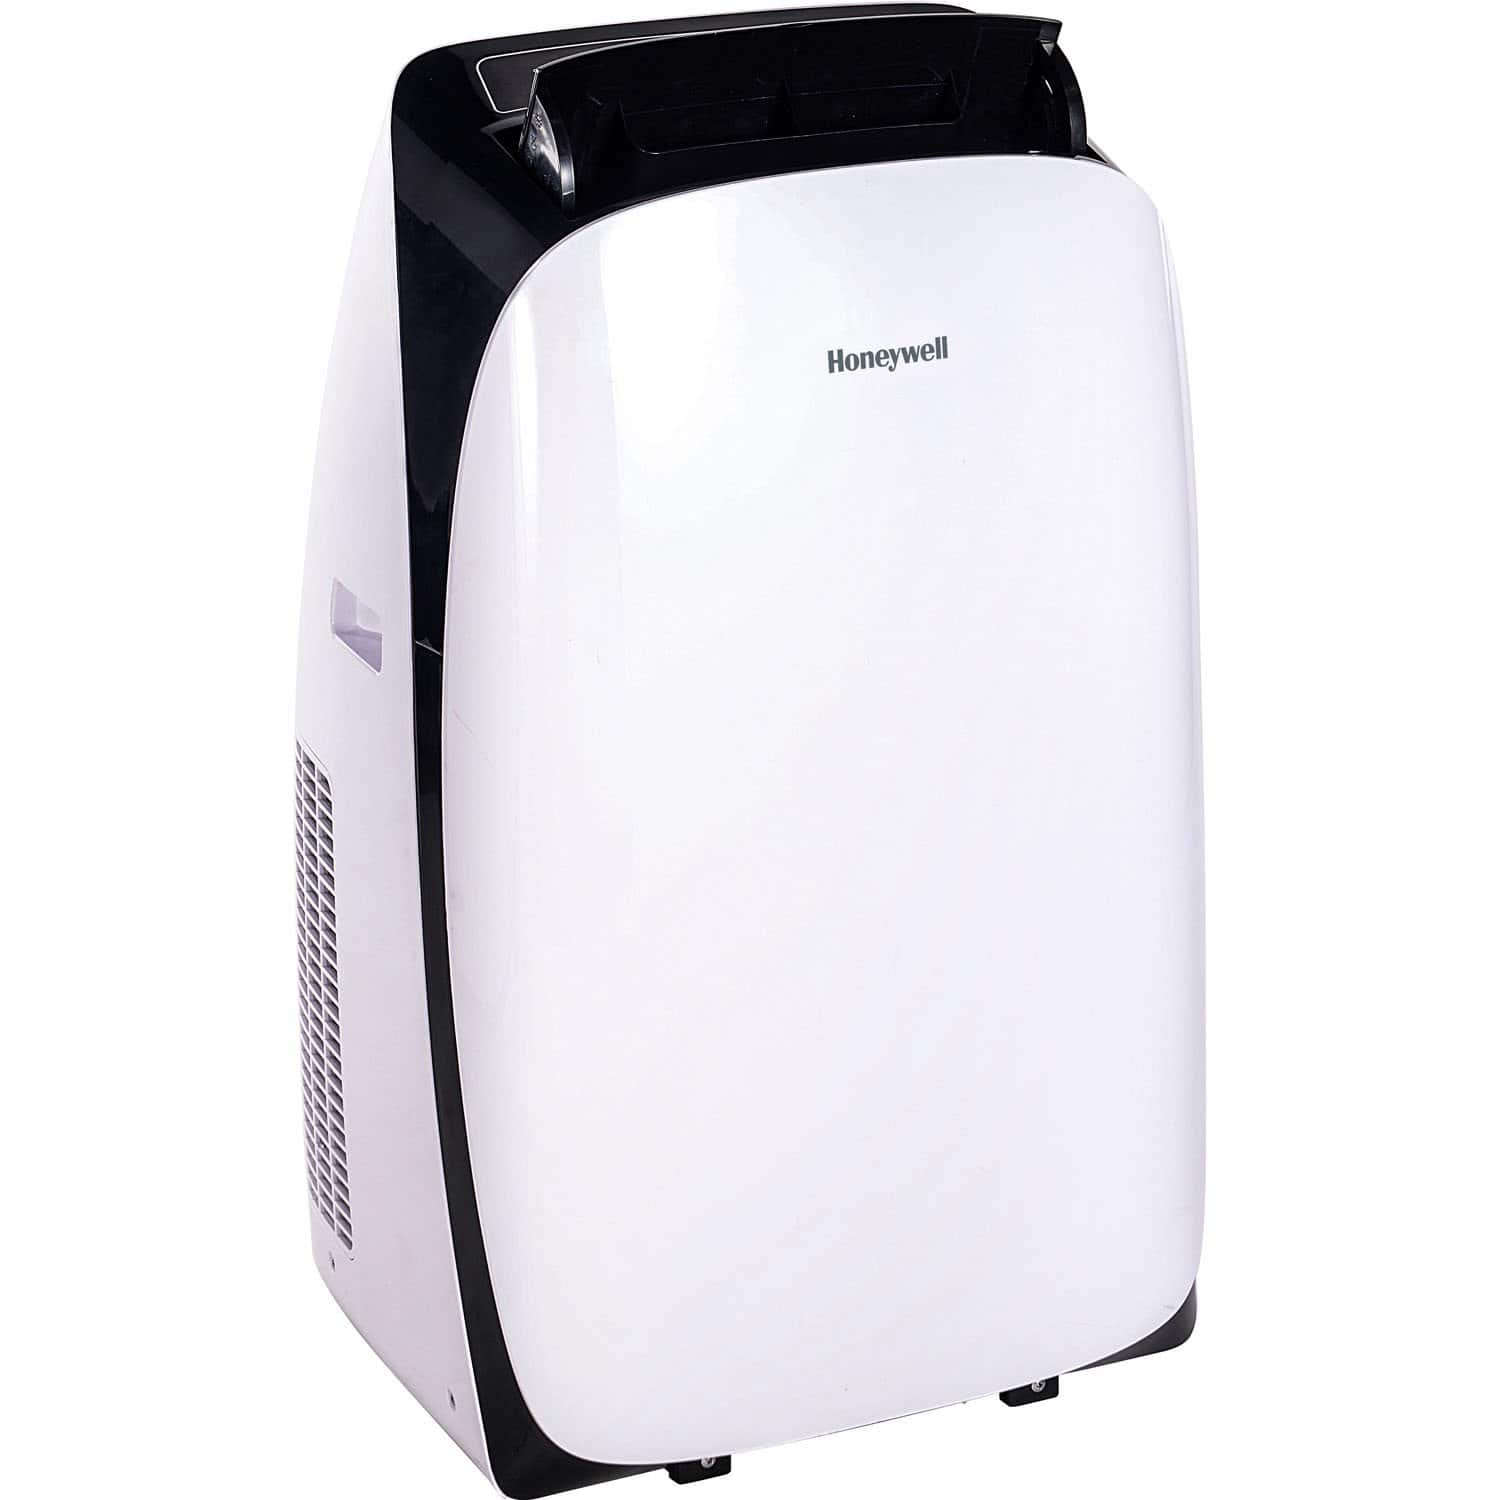 Sam's Club Members: 10,000 BTU Honeywell Series Portable Air Conditioner with Remote Control $360 + Shipping